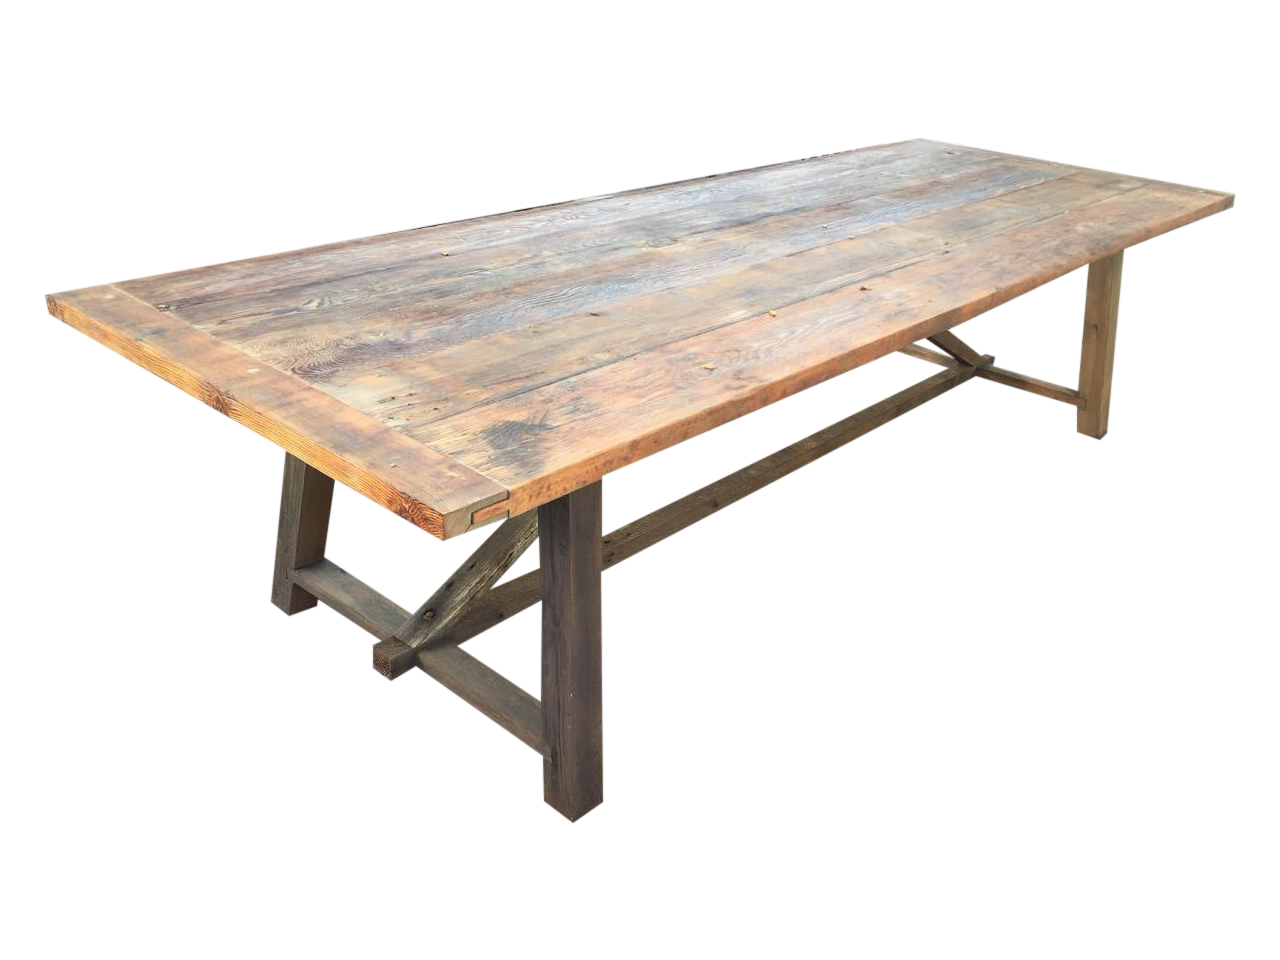 10 Salvaged Reclaimed Wood Outdoor Dining Table Chairish : 6b591de5 dde8 4bae b626 f7b2111e1c1daspectfitampwidth640ampheight640 from www.chairish.com size 640 x 640 jpeg 27kB